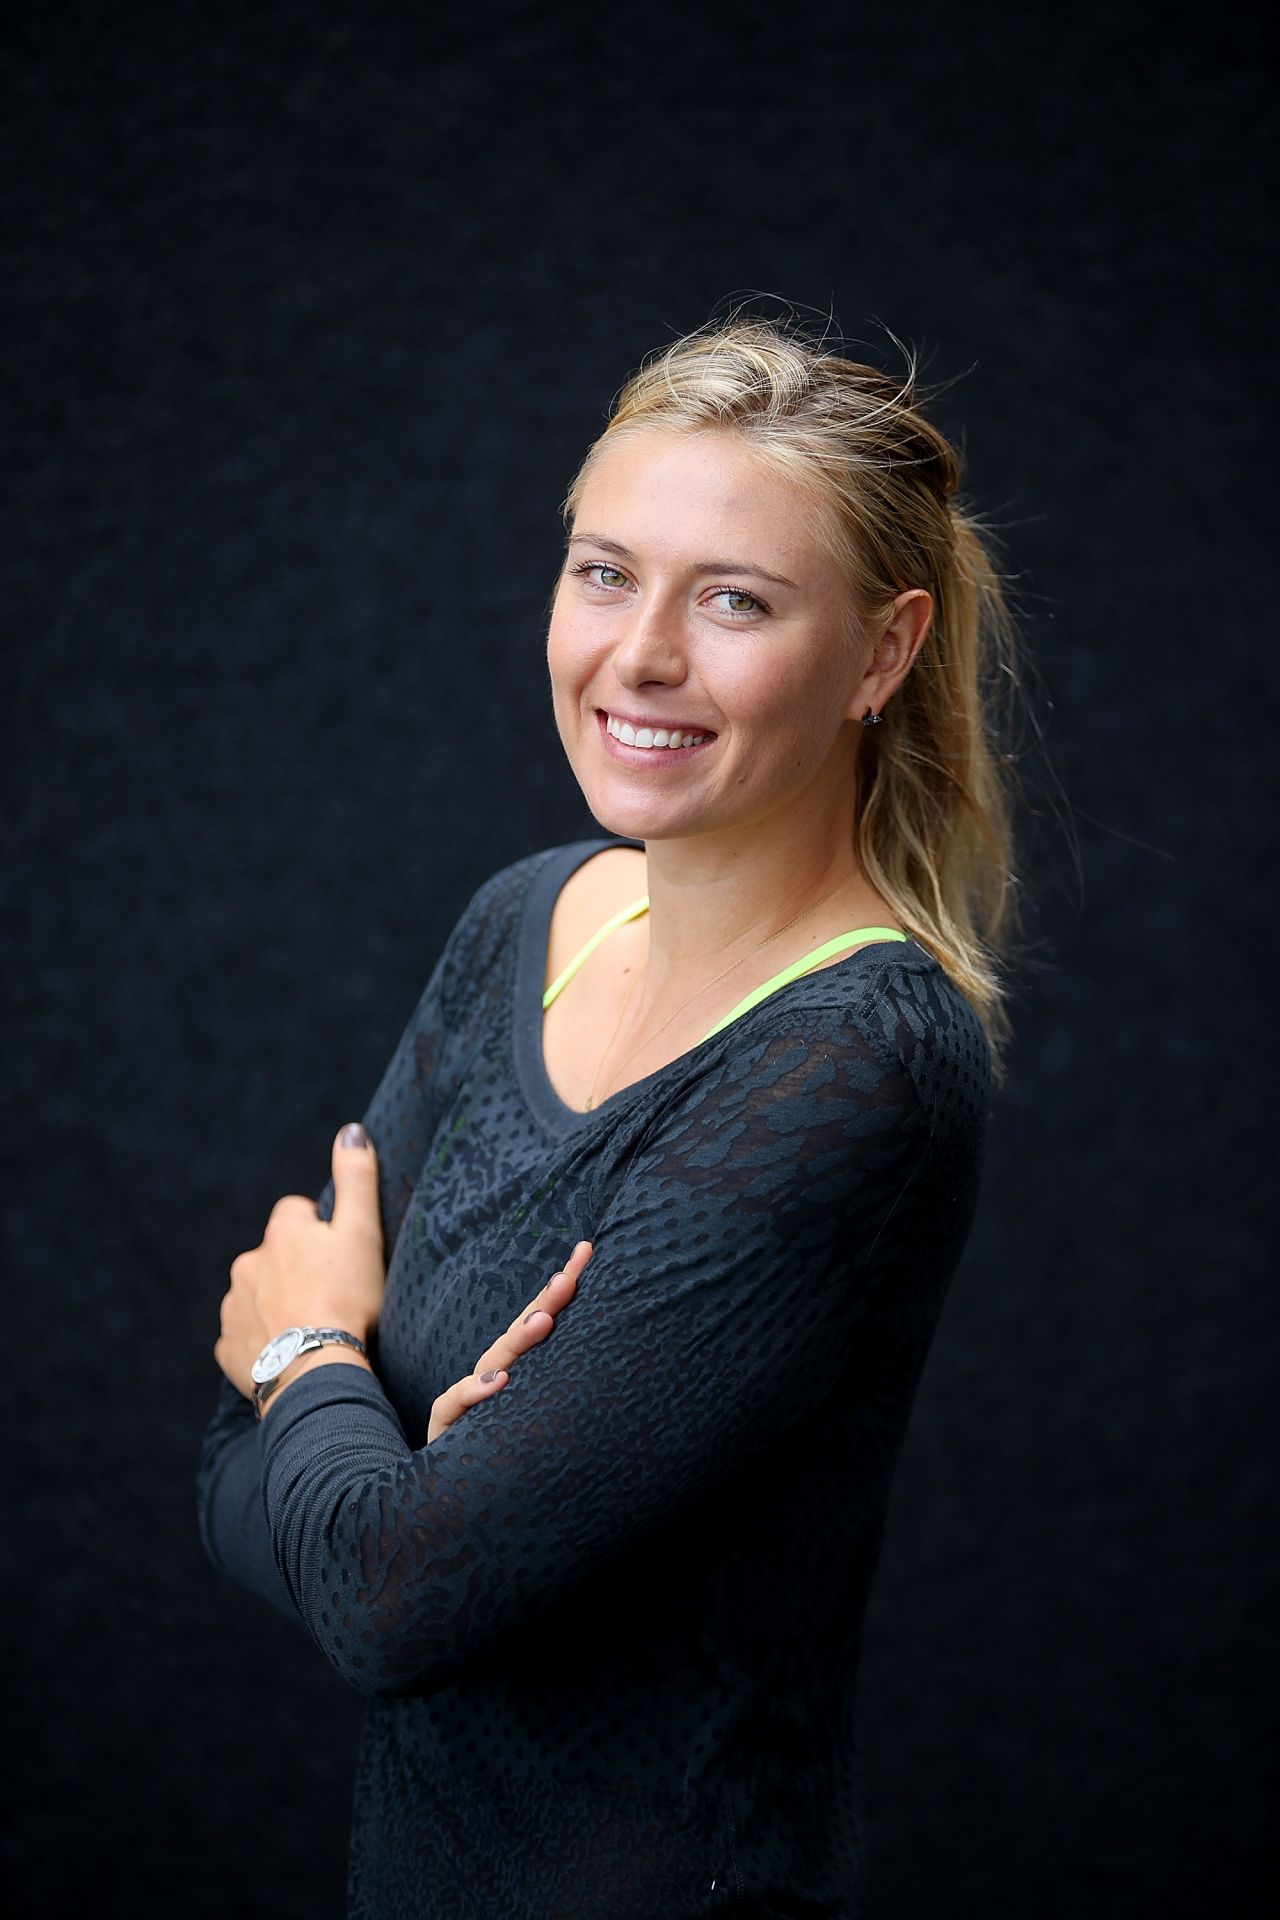 Maria Sharapova Brisbane International 2015 Portraits